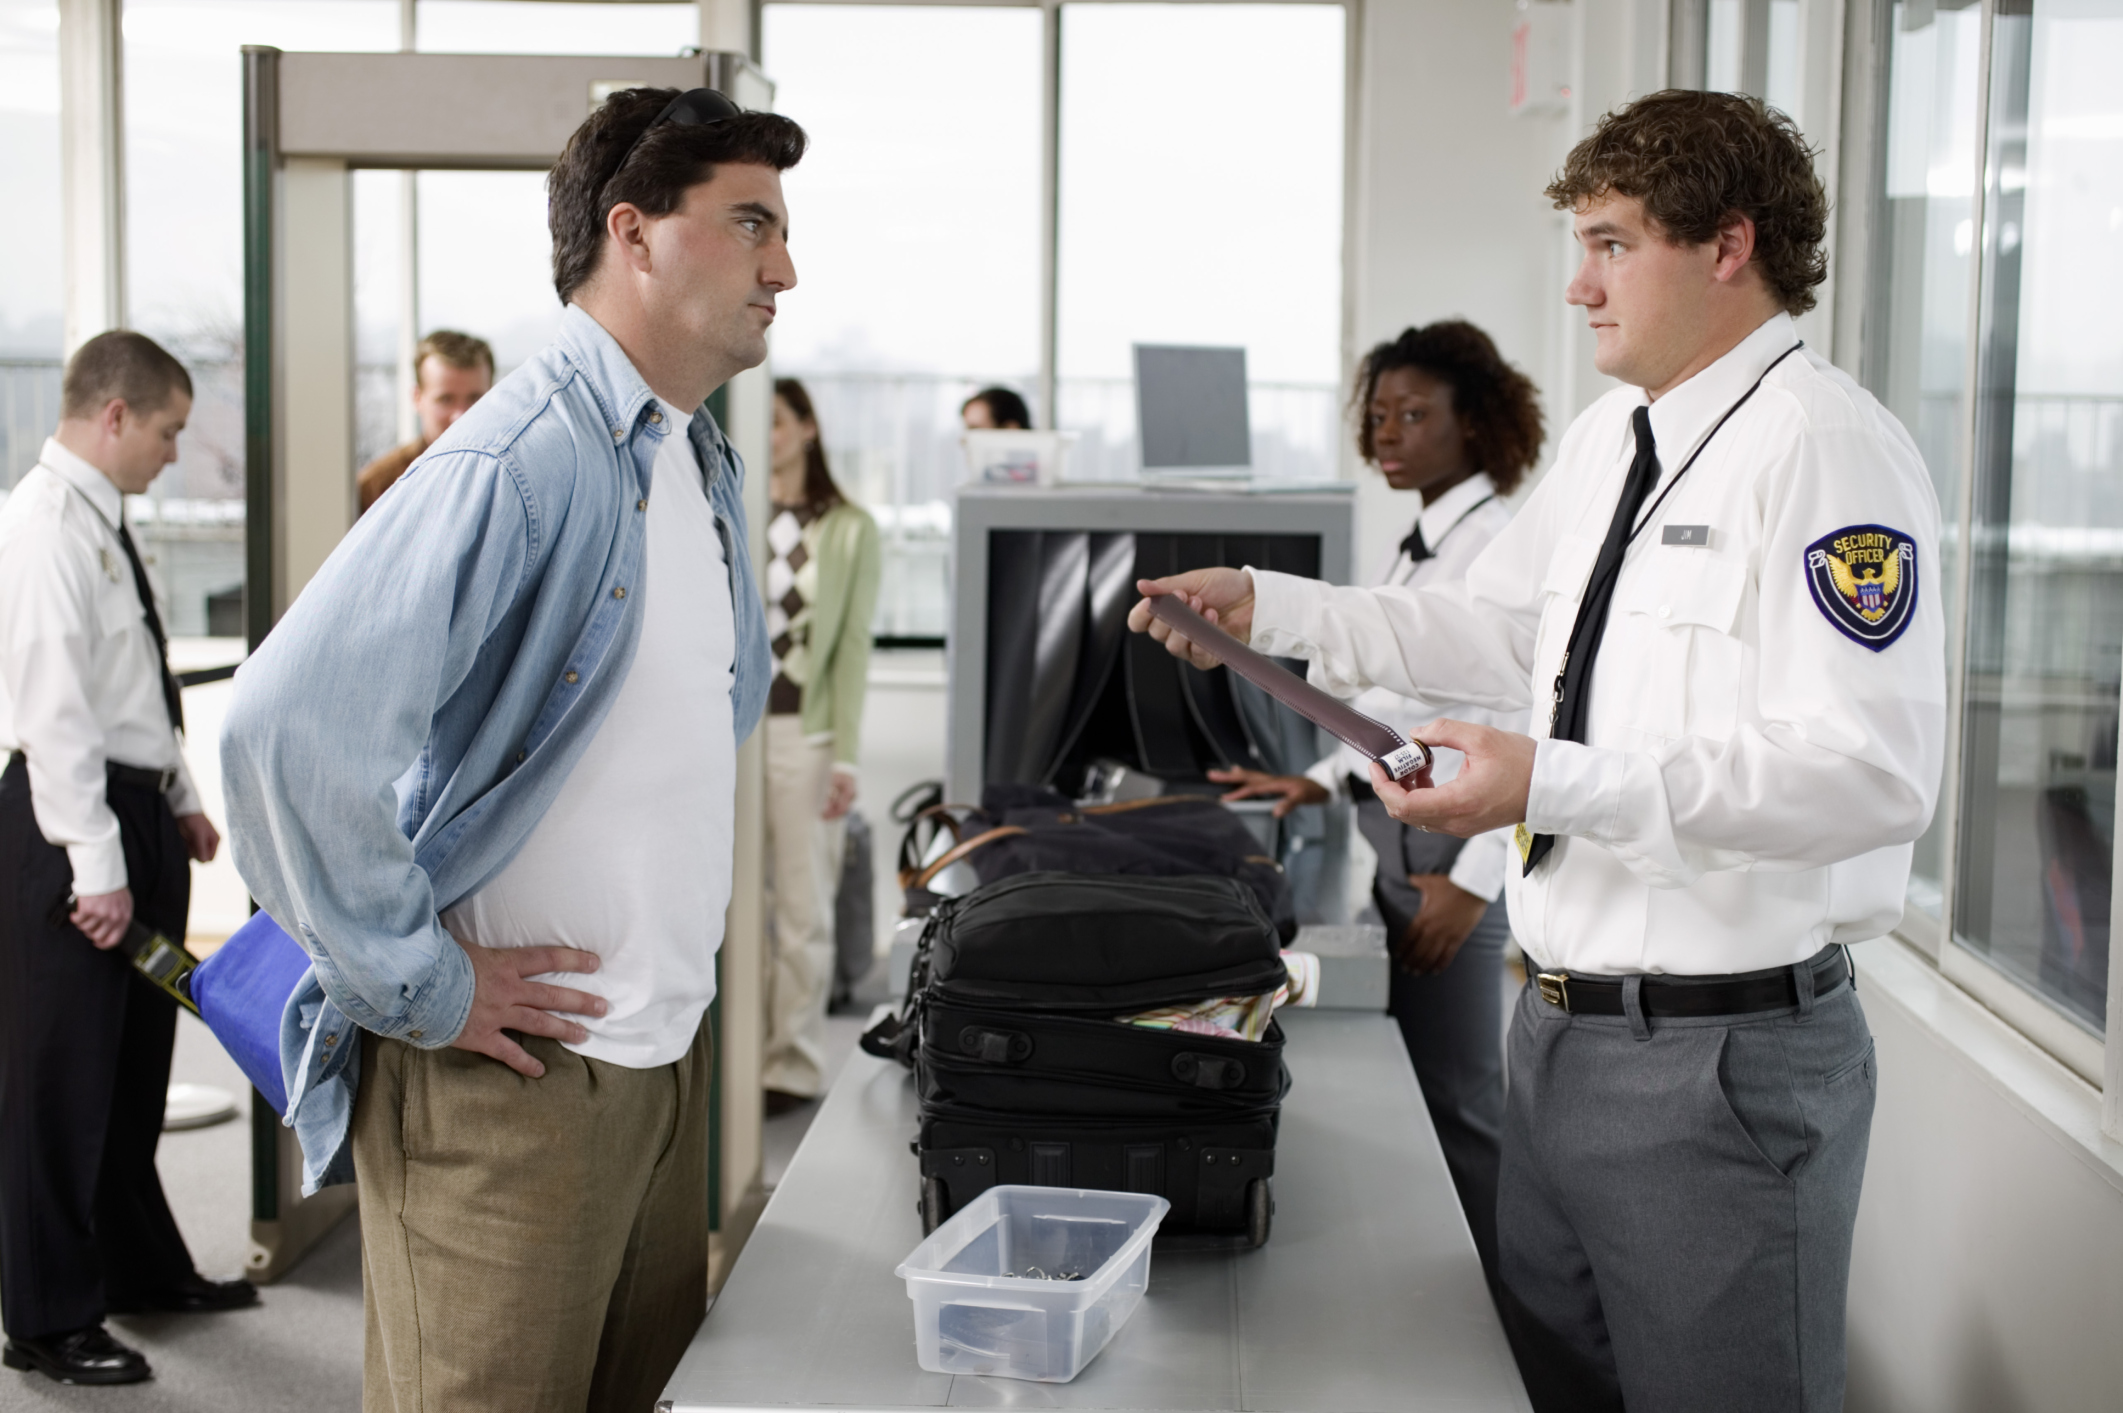 airport security officer job description career trend - Transportation Security Officer